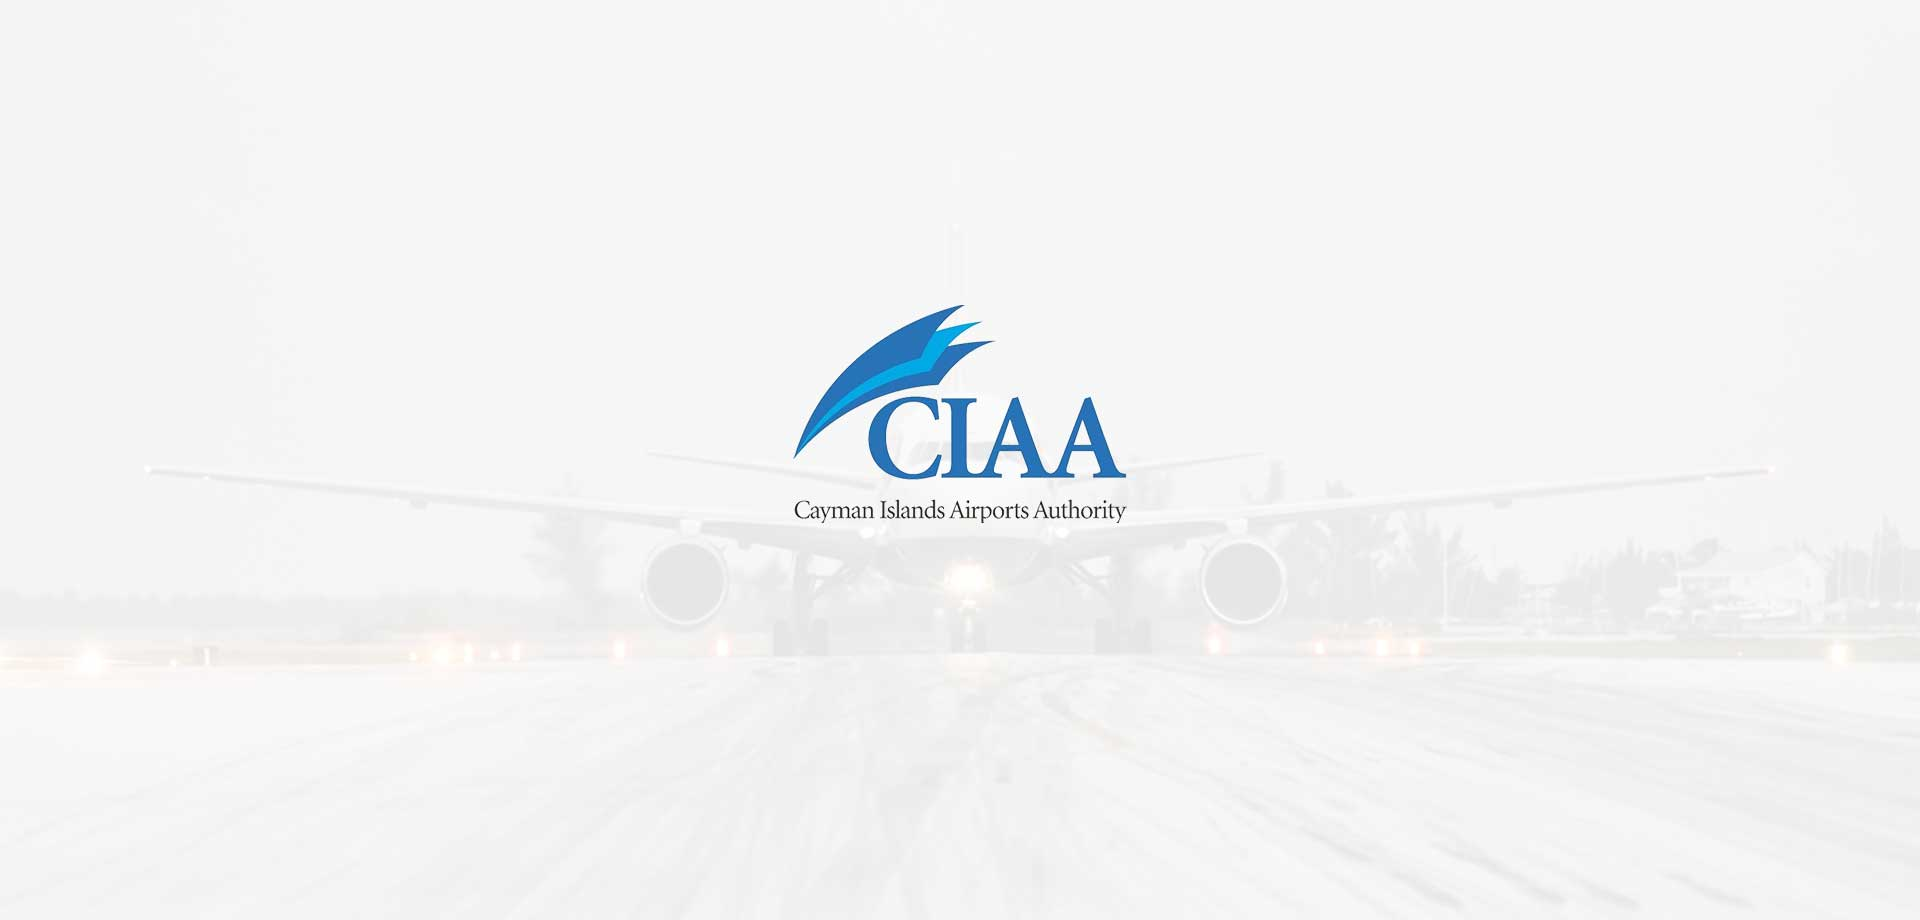 Publications of Cayman Islands Airport Authority